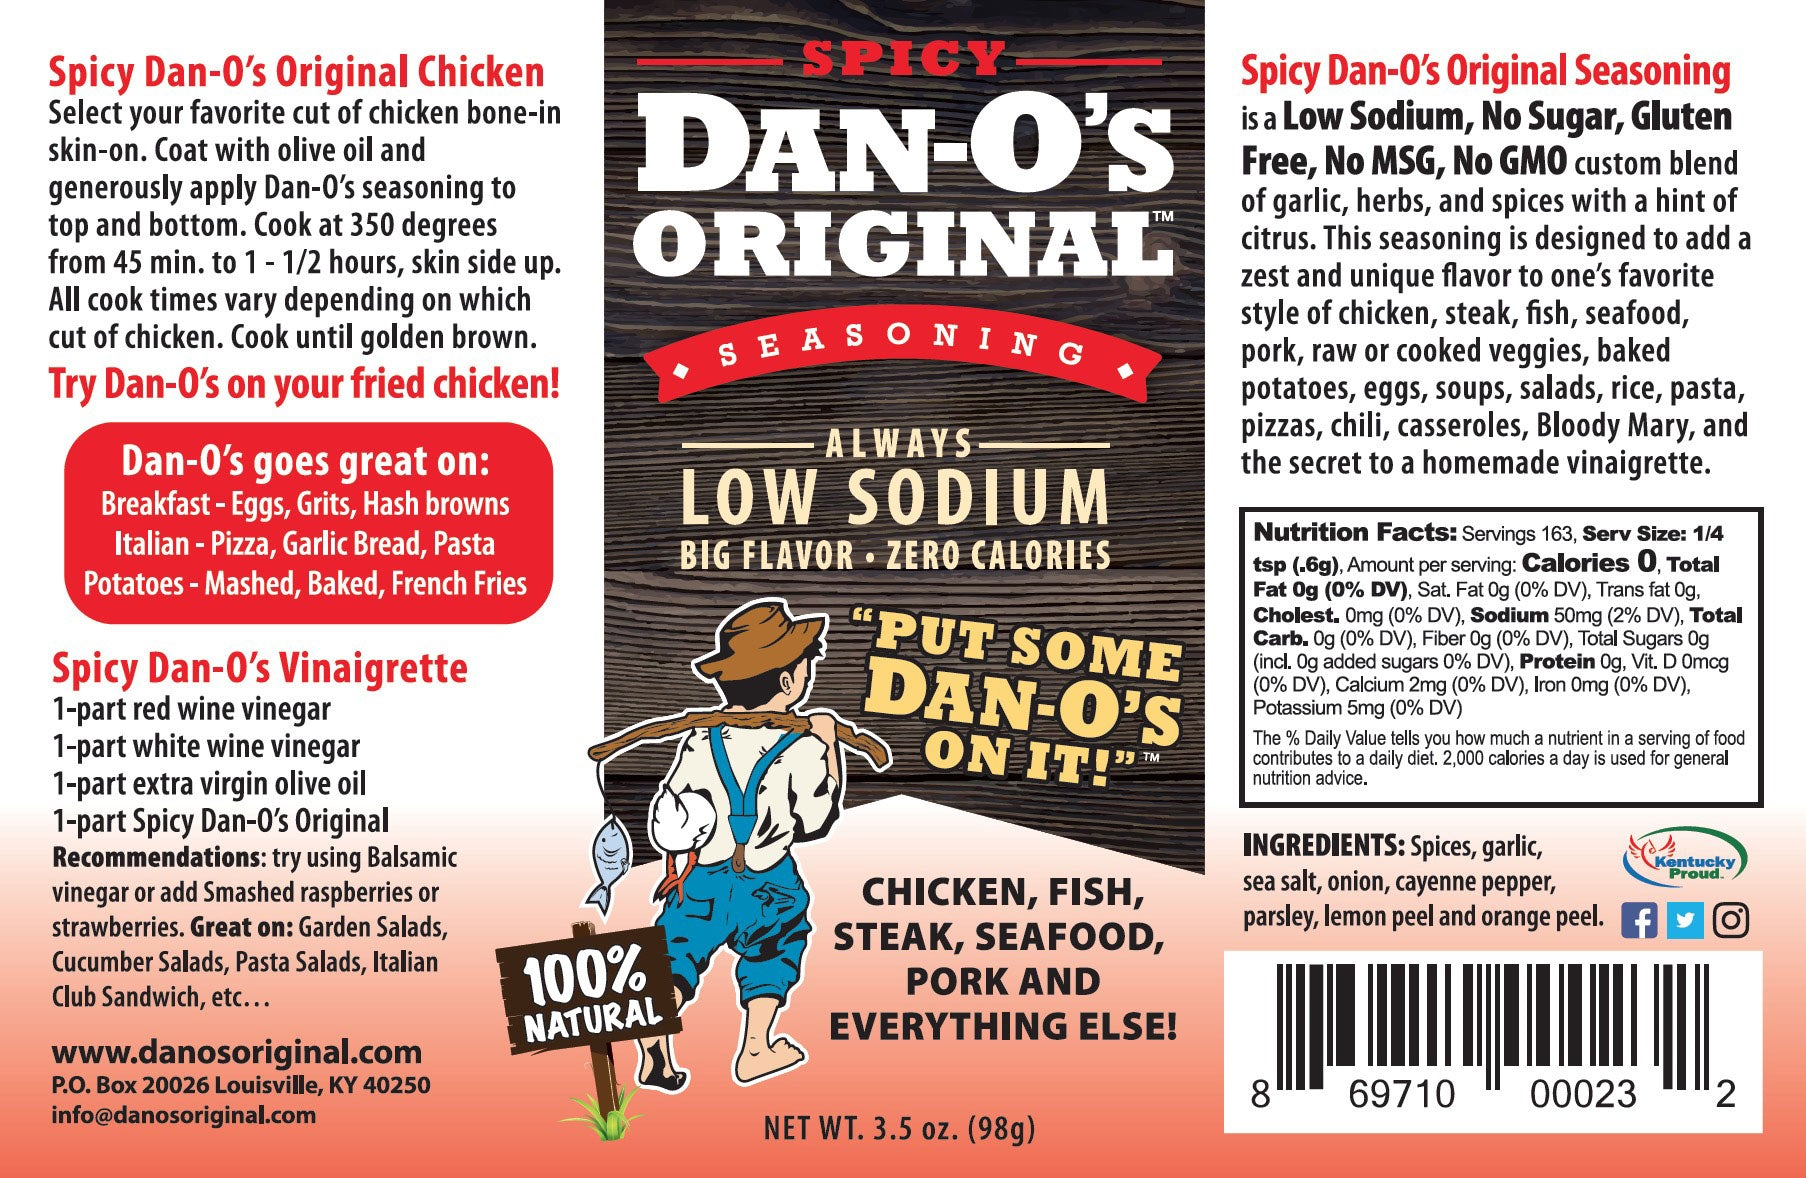 Spicy Dan-O's Original Seasoning - Dan-O's Orginal Seasoning